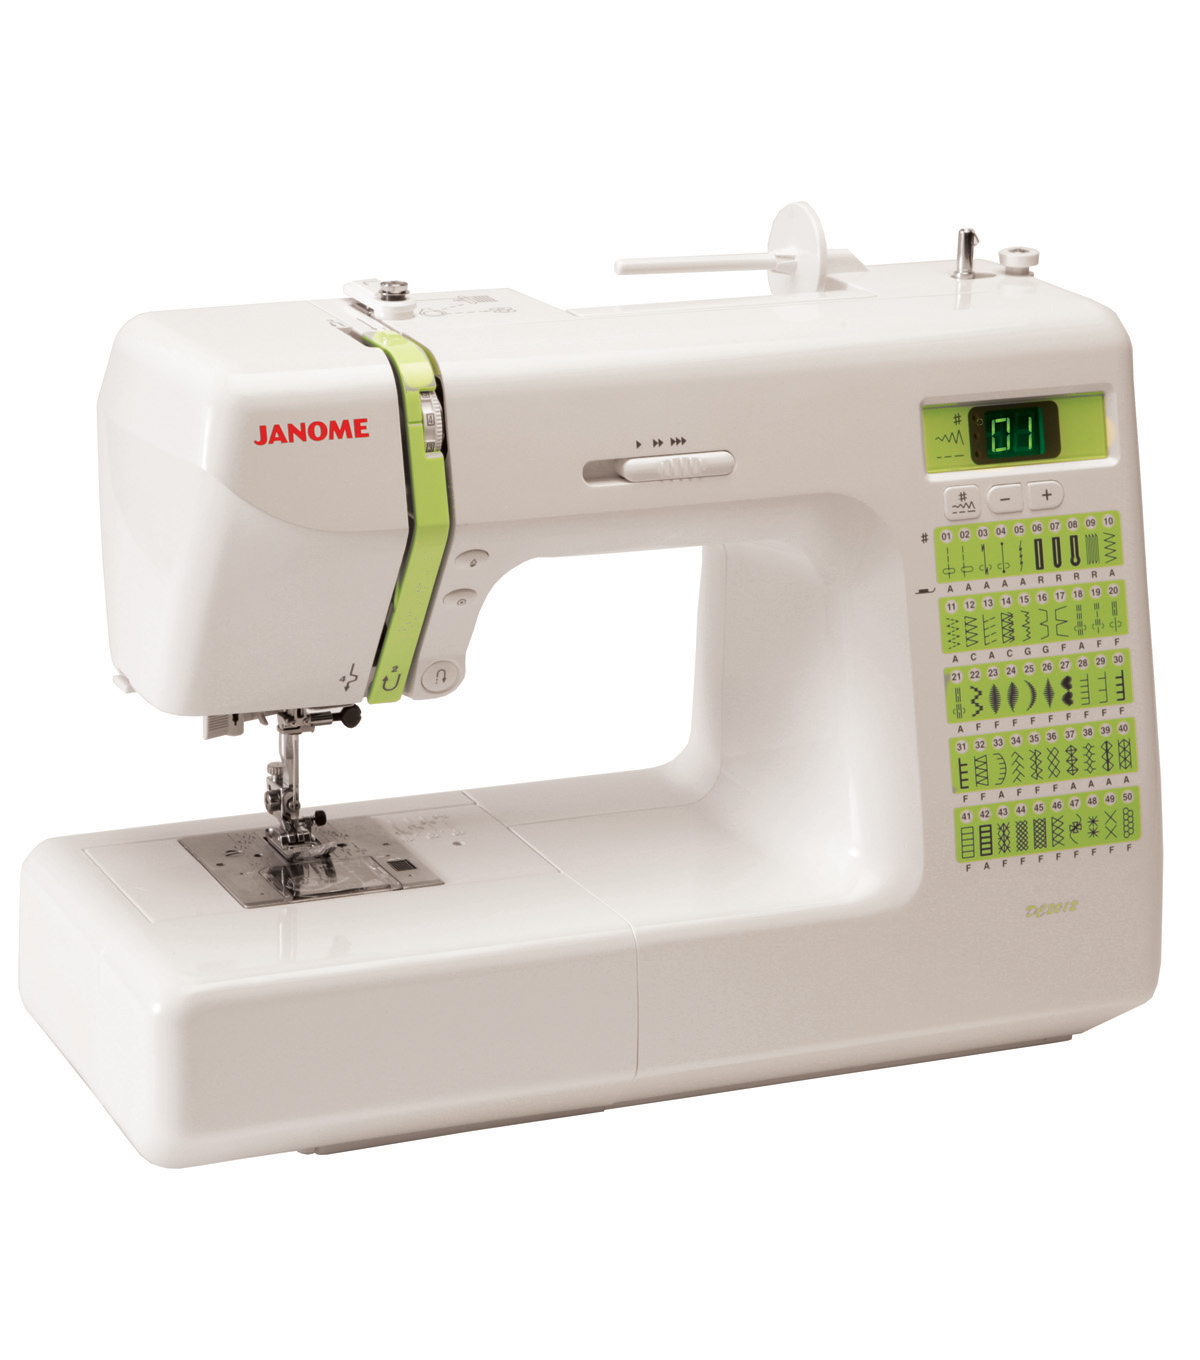 Janome DC2012 Computerized Sewing Machin